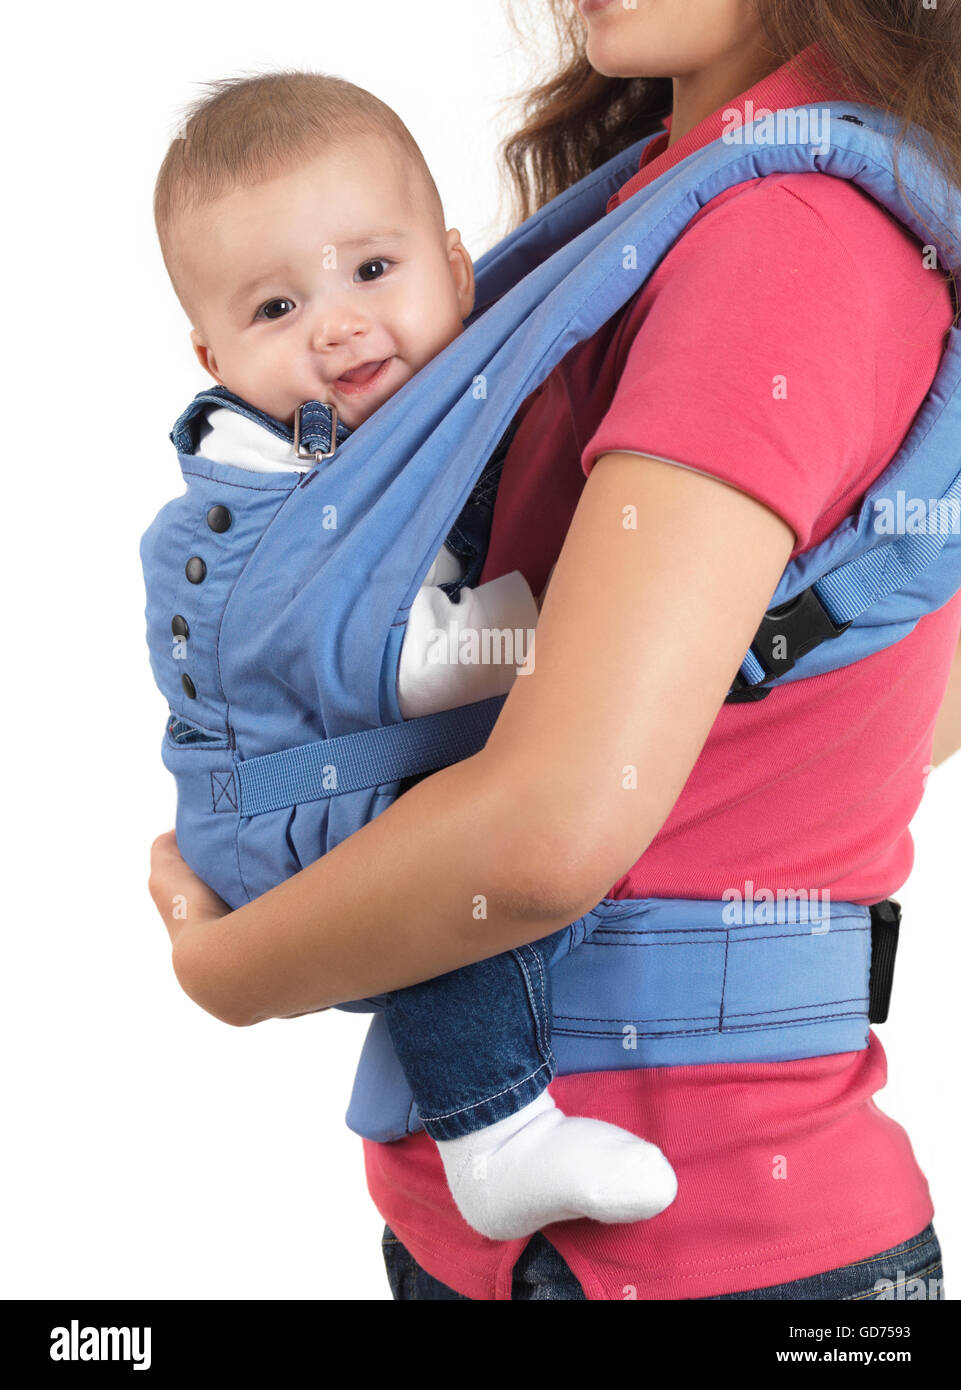 fb527b32f82 Mother with a four month old baby boy in a carrier - Stock Image